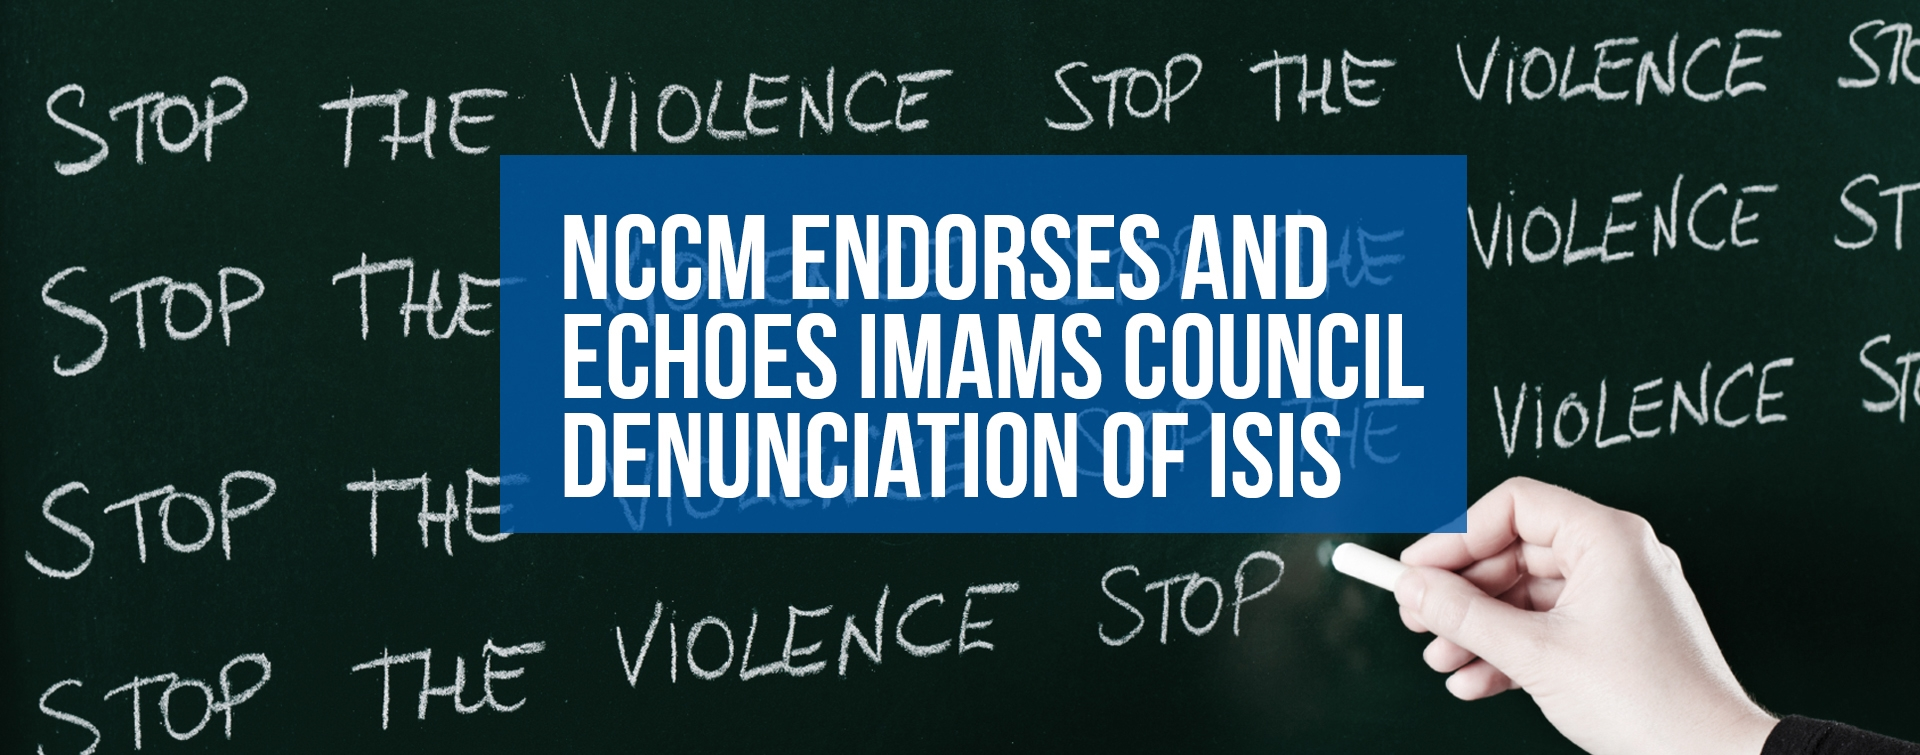 NCCM-endorses-Imams-Council-Denounce-ISIS